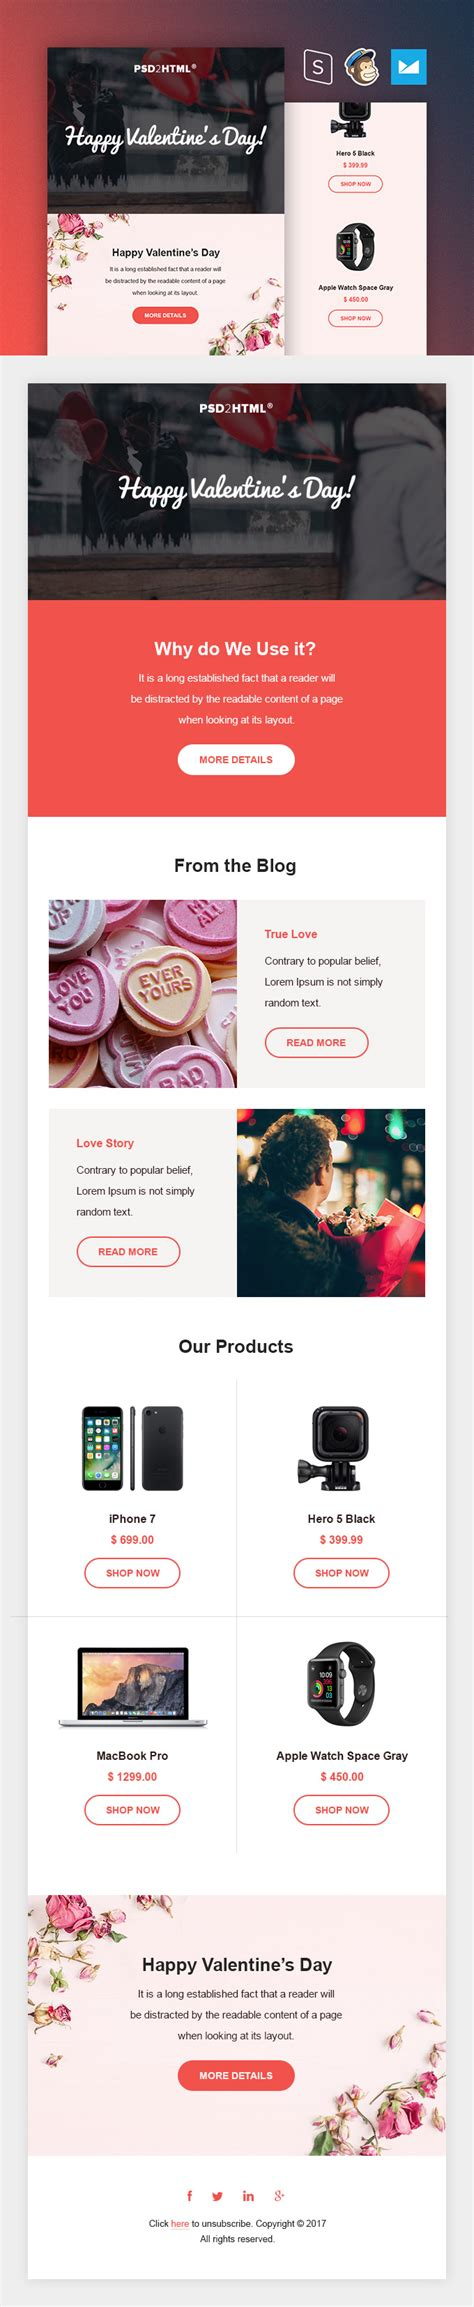 Valentine S Day Email Template Free Download Day Email Template